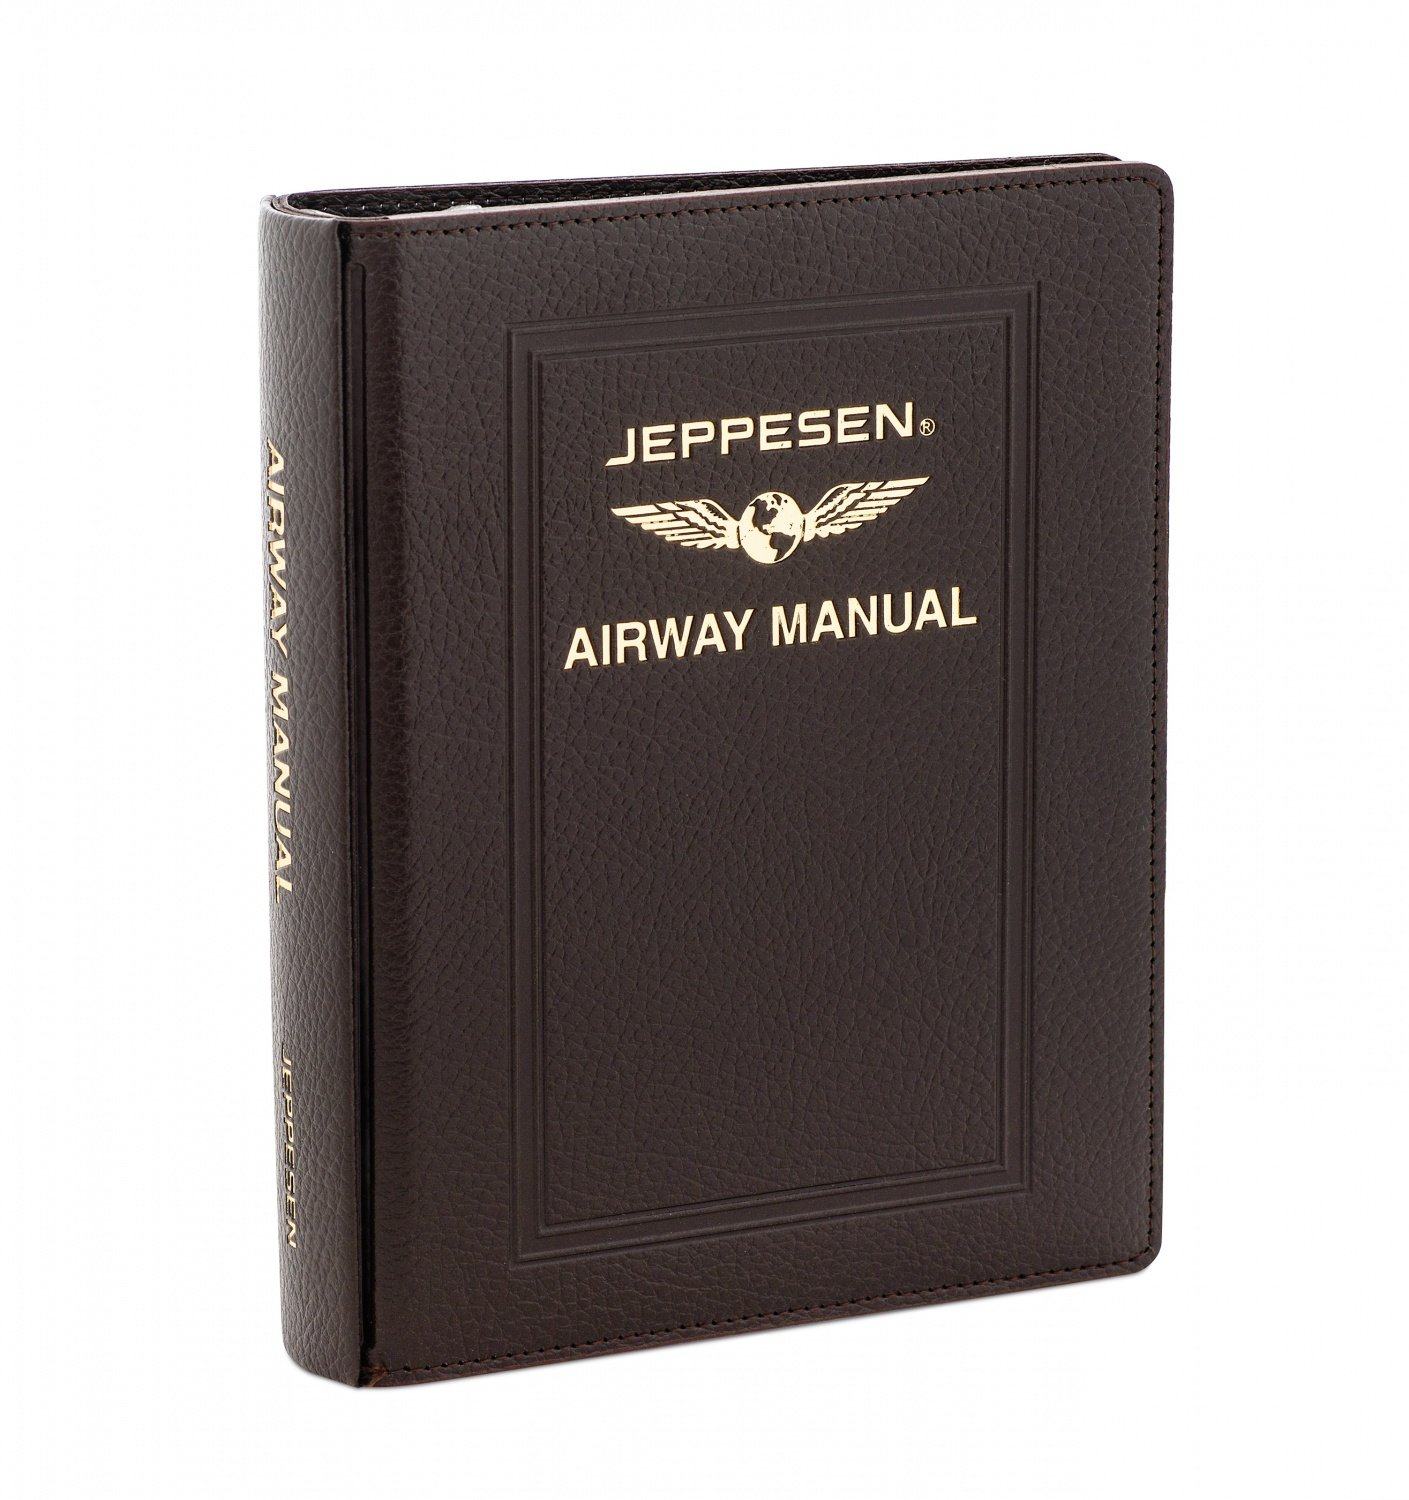 "Amazon.com: Jeppesen Airway Manual Superior Plastic Binder - 1"" Rings -  10001087: Office Products"